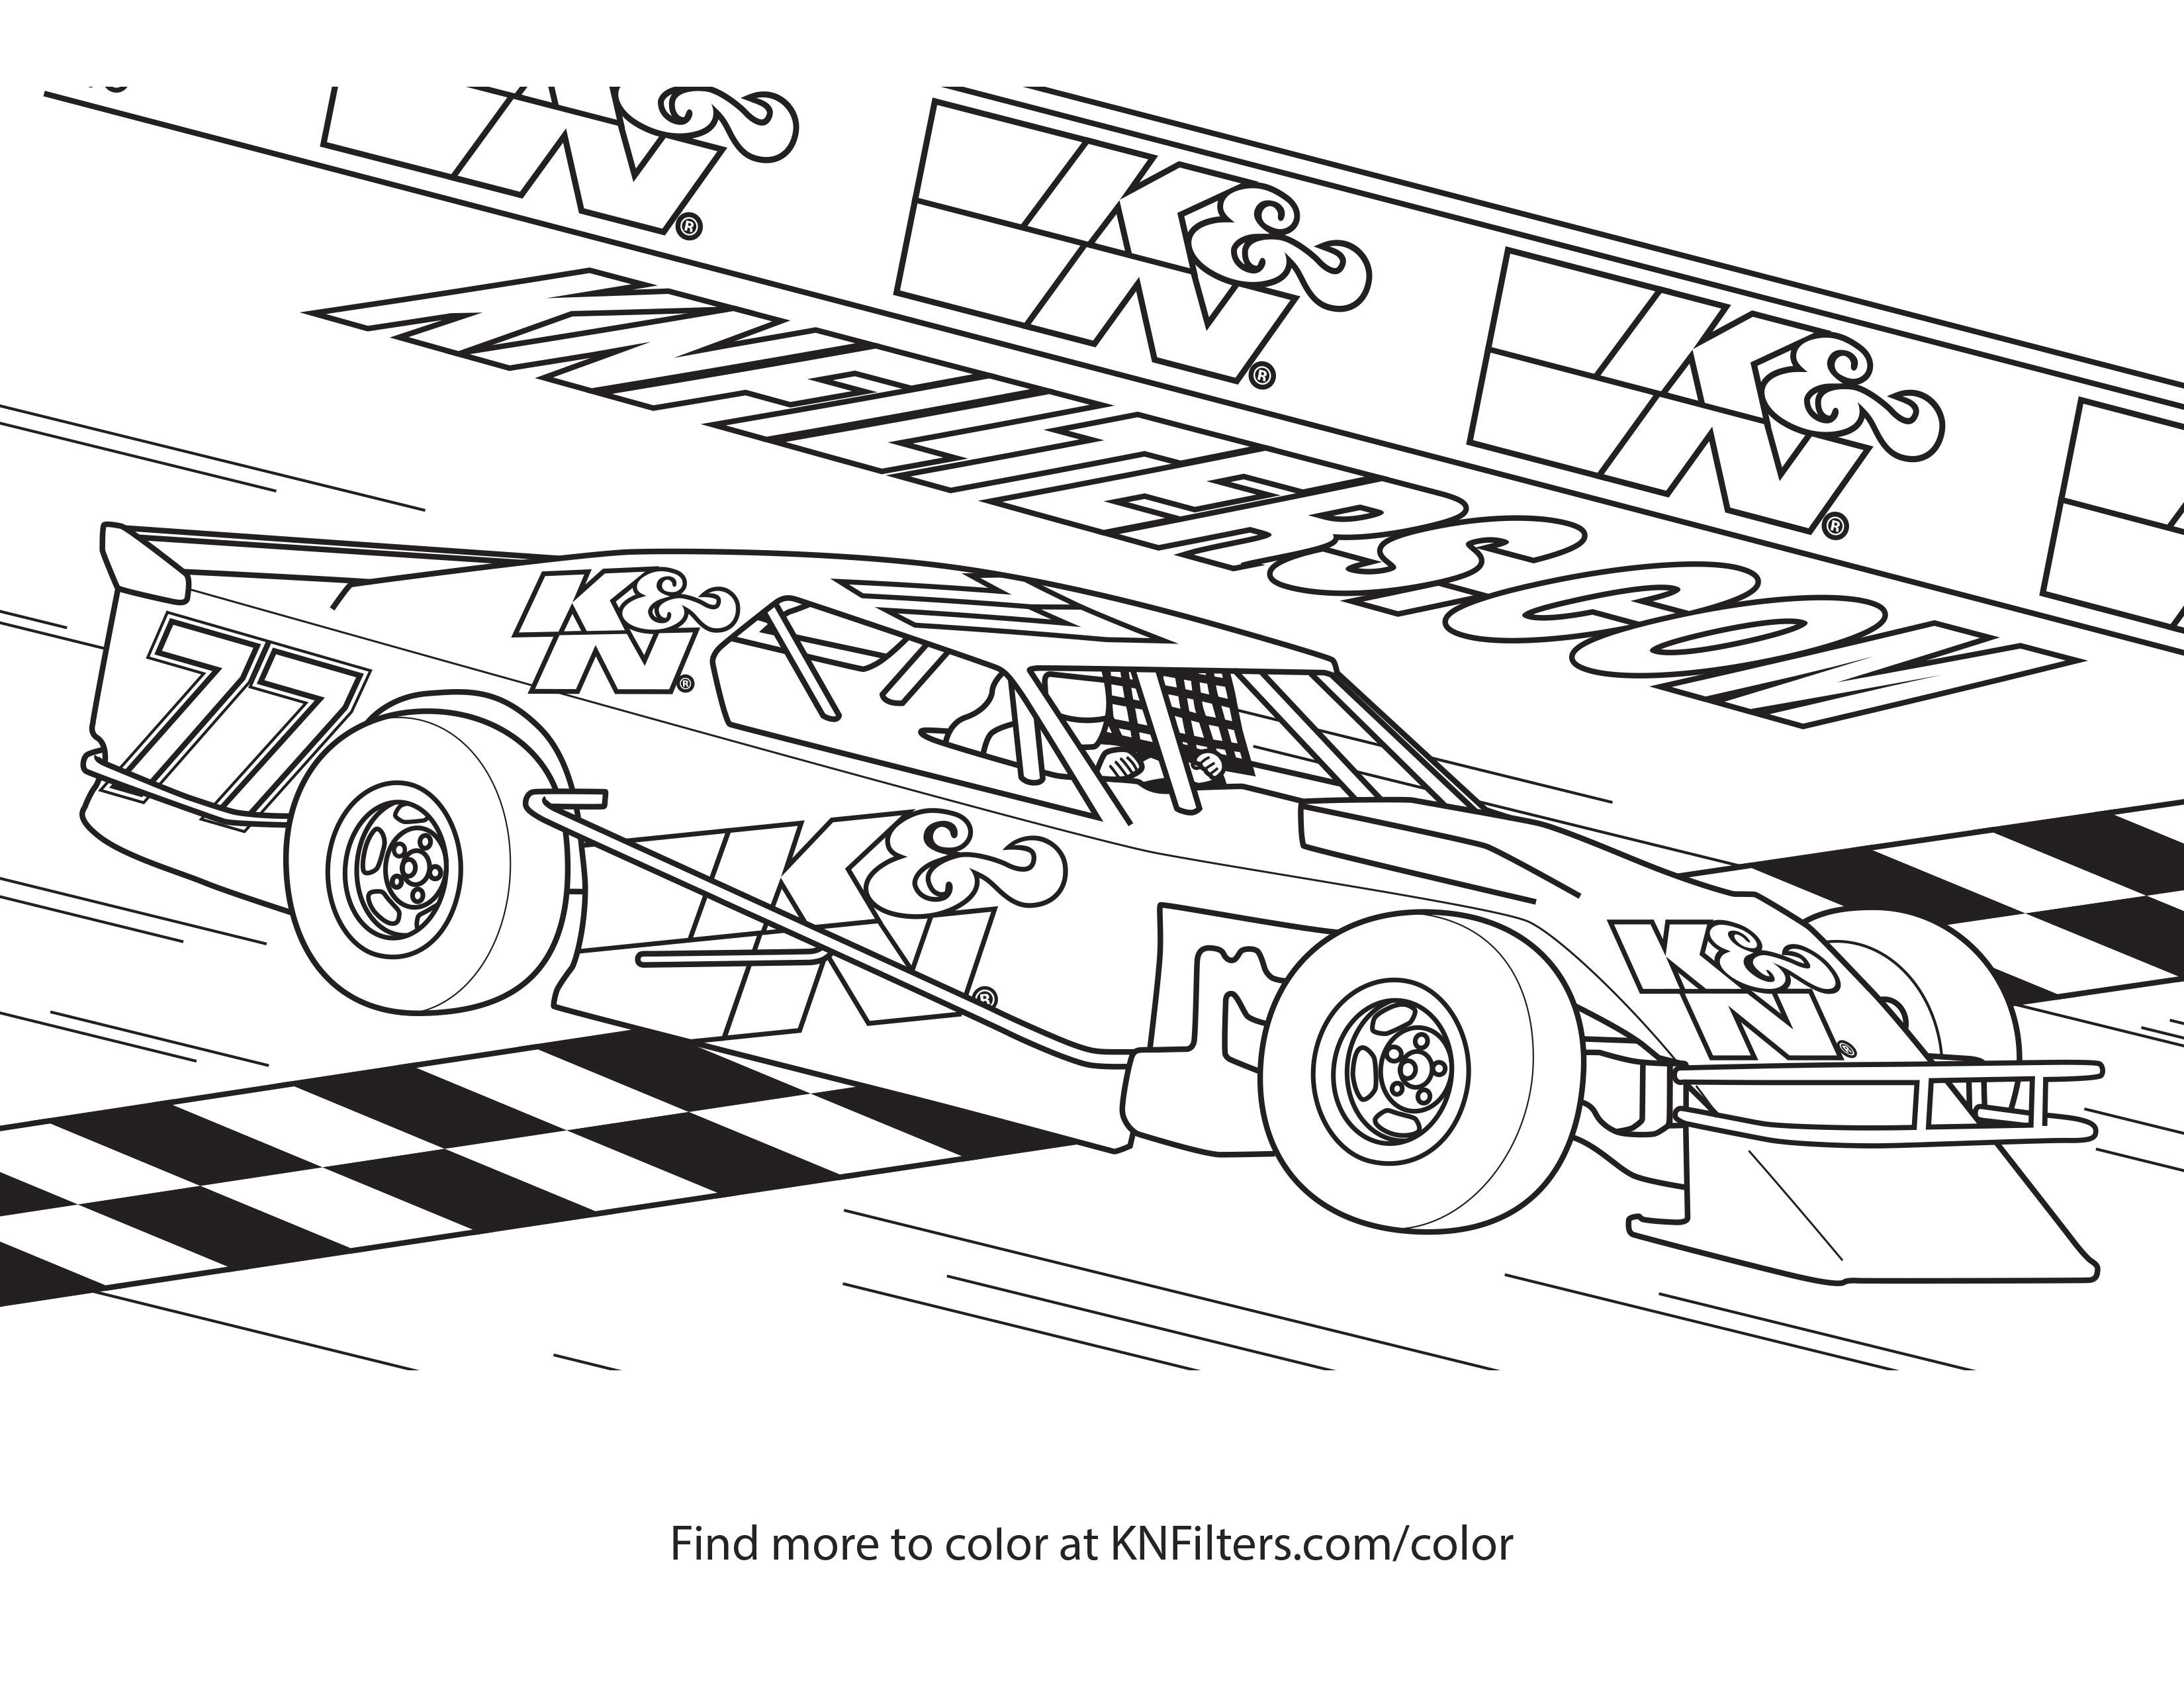 car printable coloring pages Collection-Modified Race Car K&N Printable Coloring Page 2-i